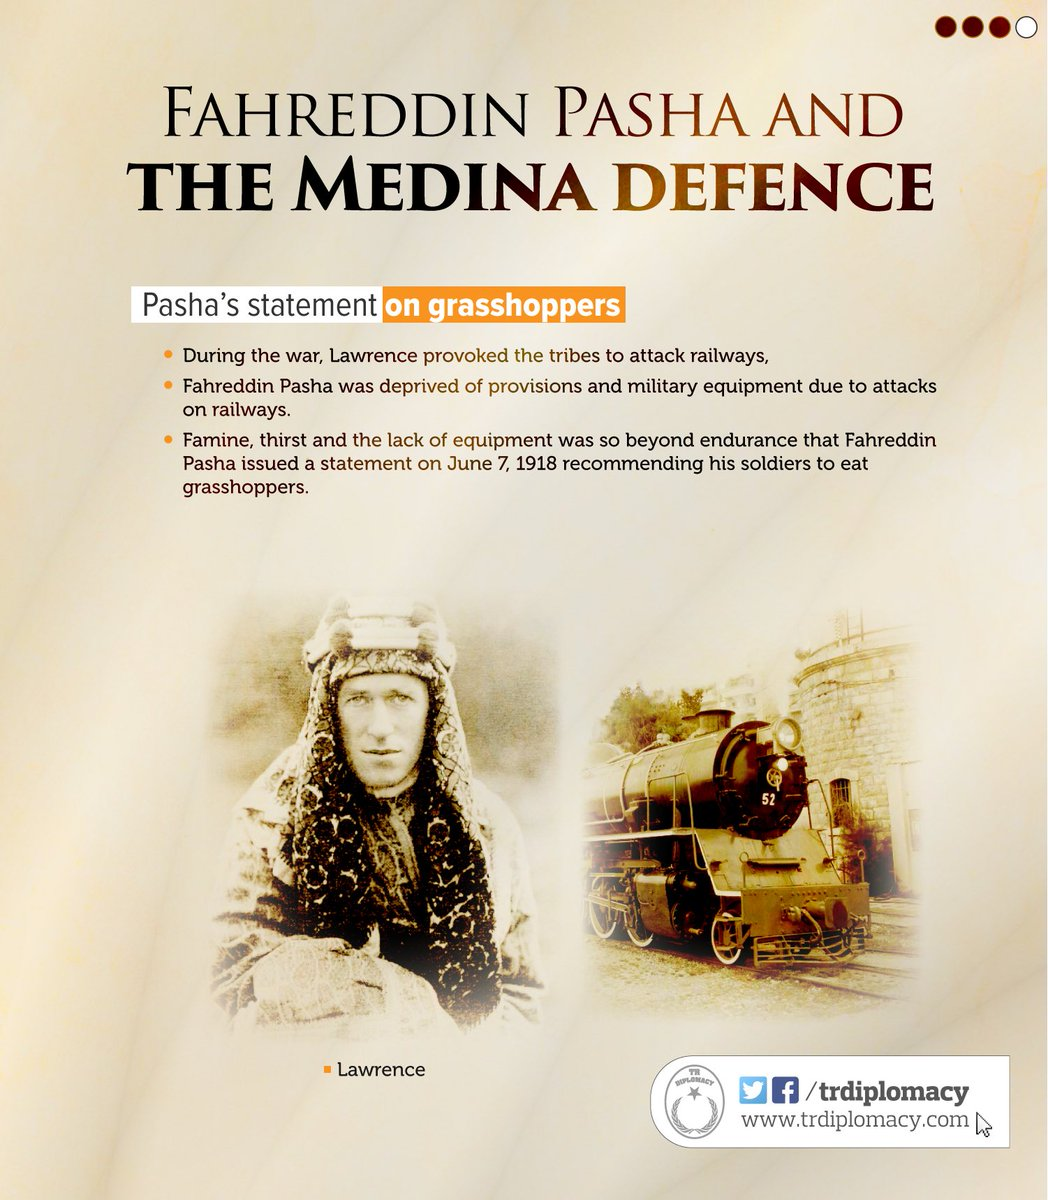 Fahreddin Pasha and The Medina Defence